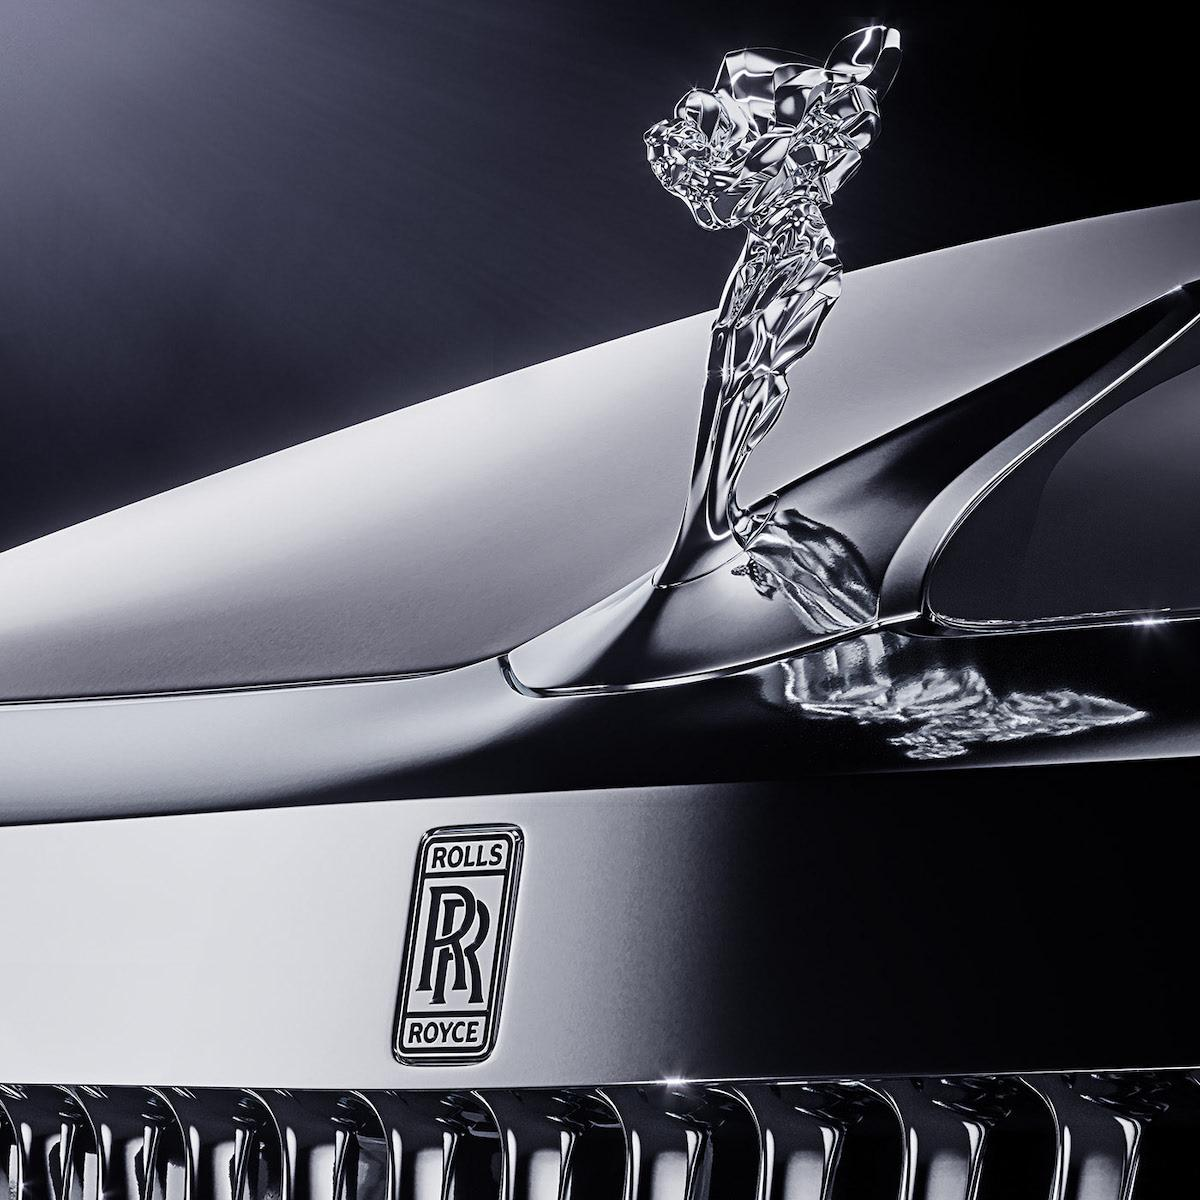 New redesigned Spirit of Ecstasy looks awesome with the new design